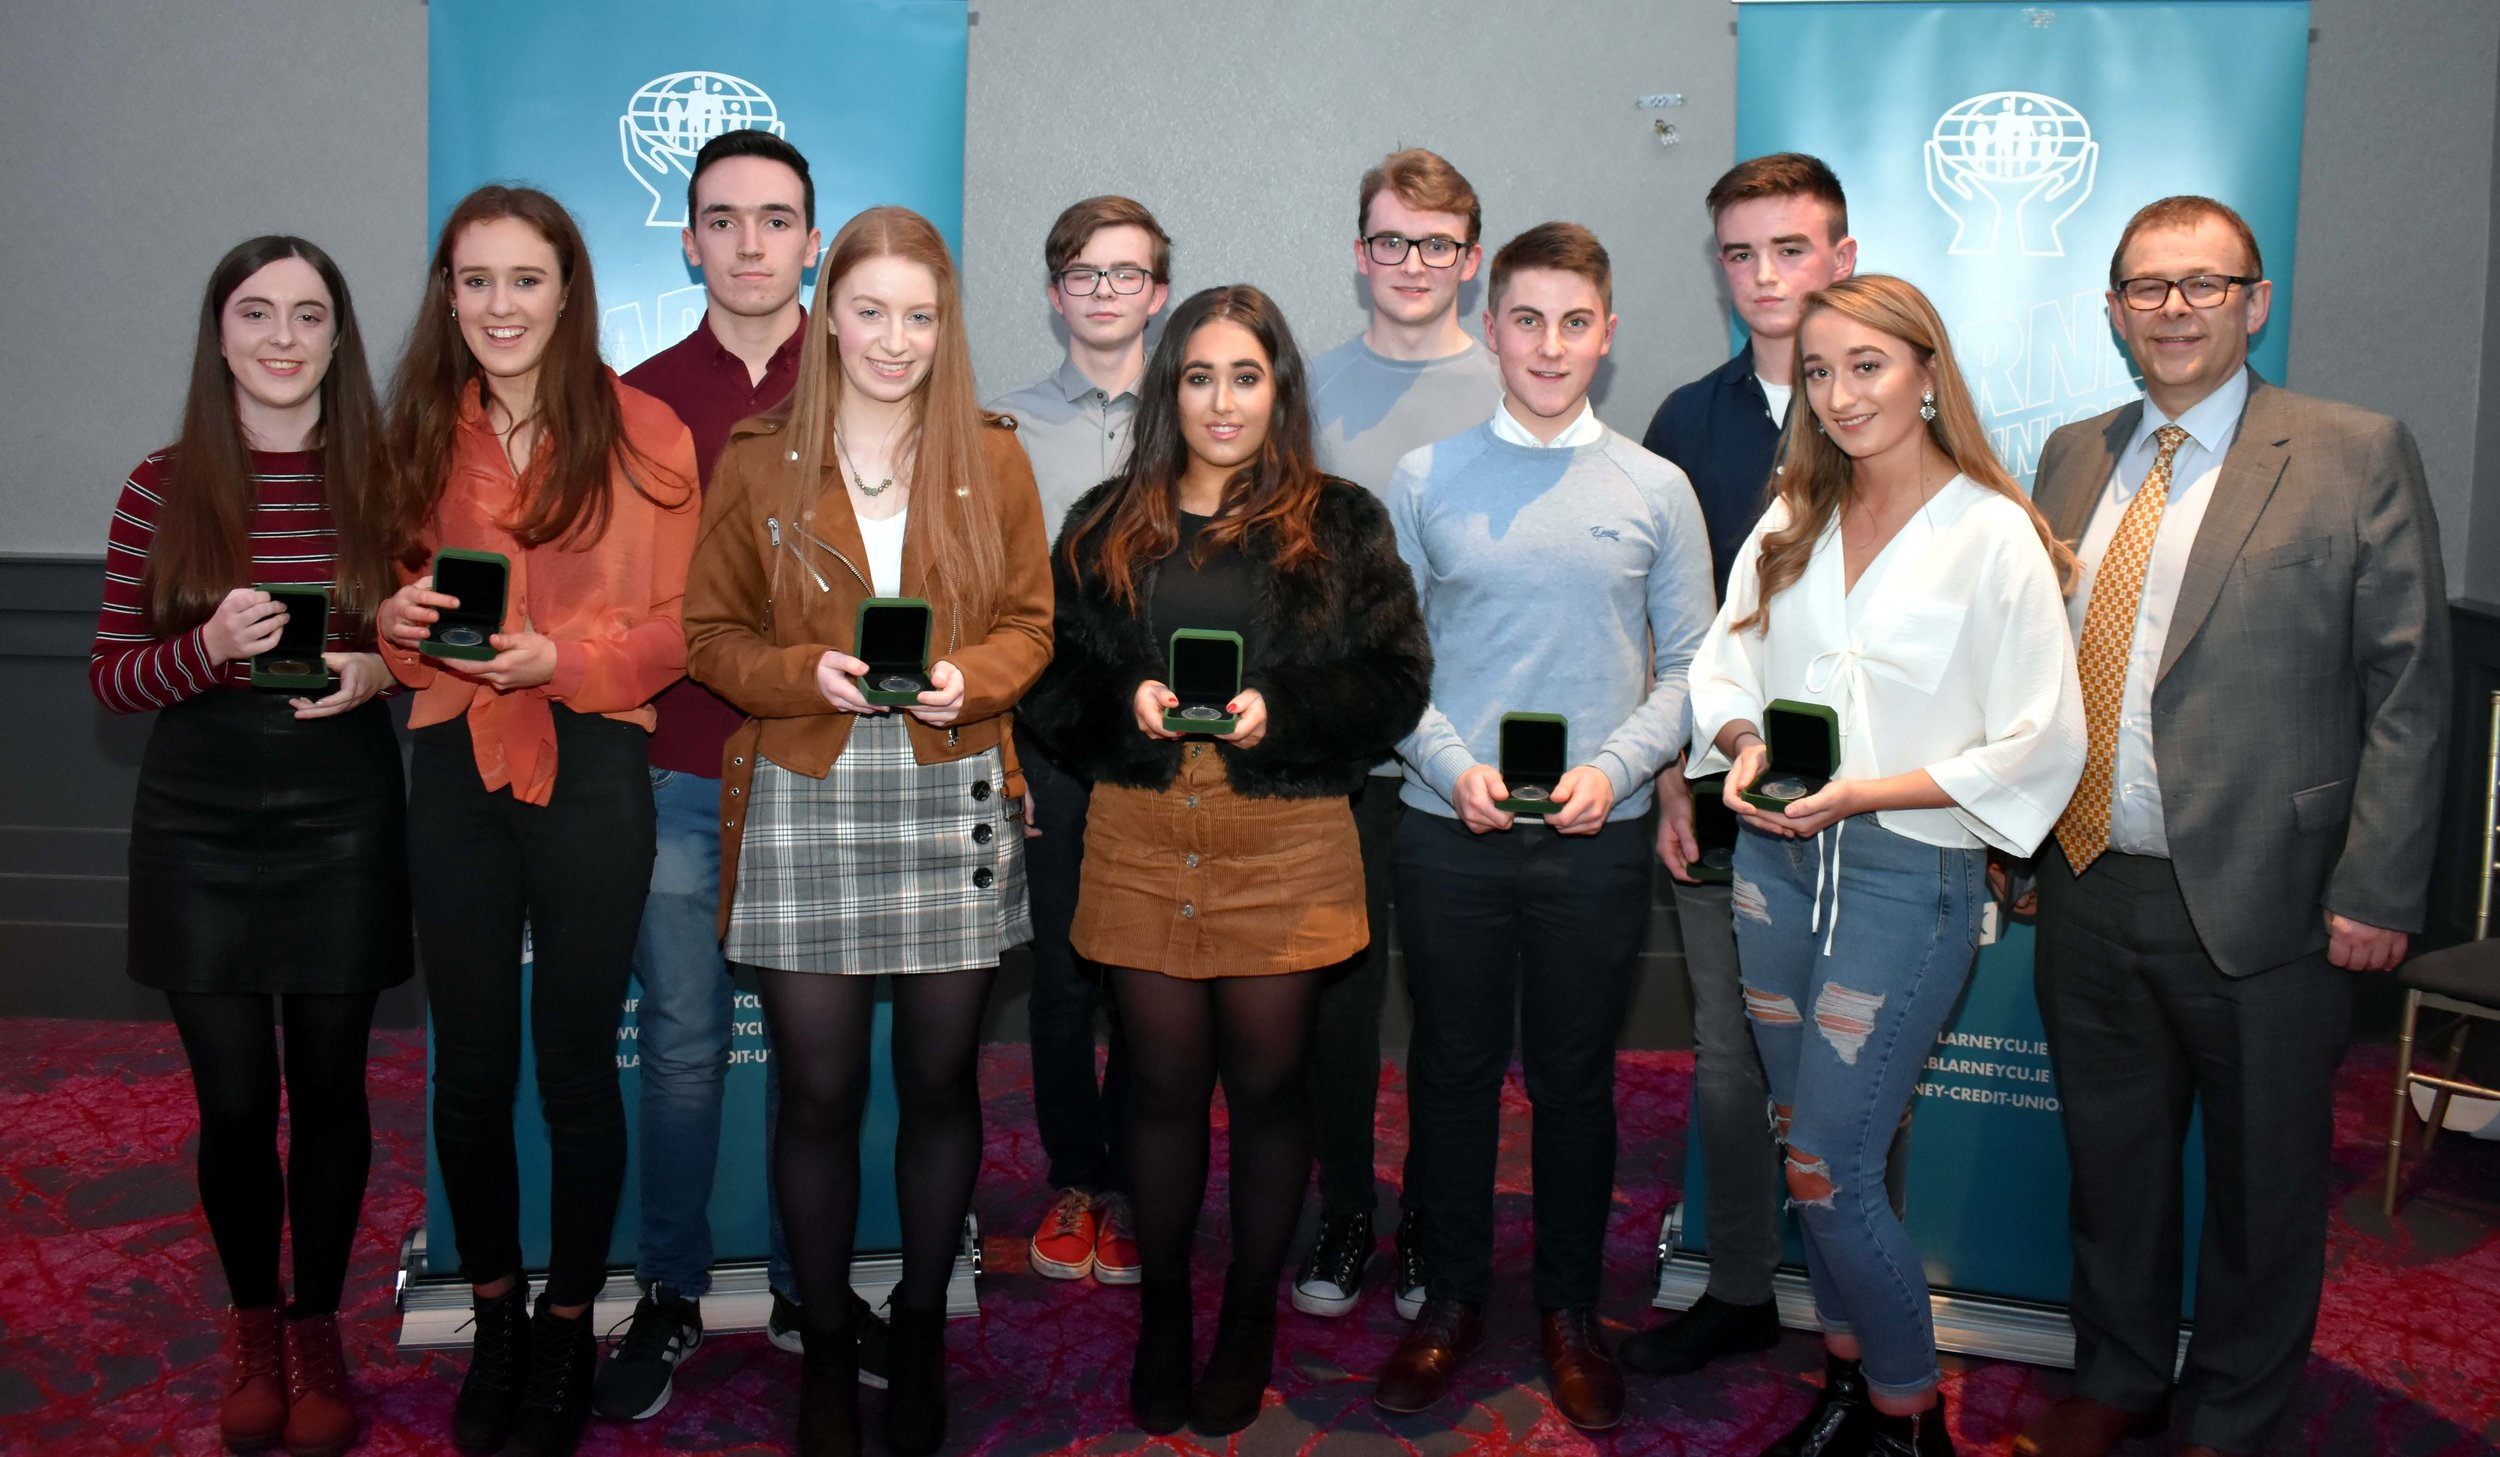 Leaving Cert Class of 2018 over 500 points: (L-R) Laoise Gavin, Ciara Sheehan, David Rea, Karen O' Connell, Aaron Dorney, Laura O' Driscoll, Joseph Linehan, Denis O' Sullivan, Shane Carroll, Sophie Williams. Absent from photo- Giovanni Manfredi and Jason O' Riordan (Pictured with Mark McGloughlin - BOM and Blarney Credit Union)